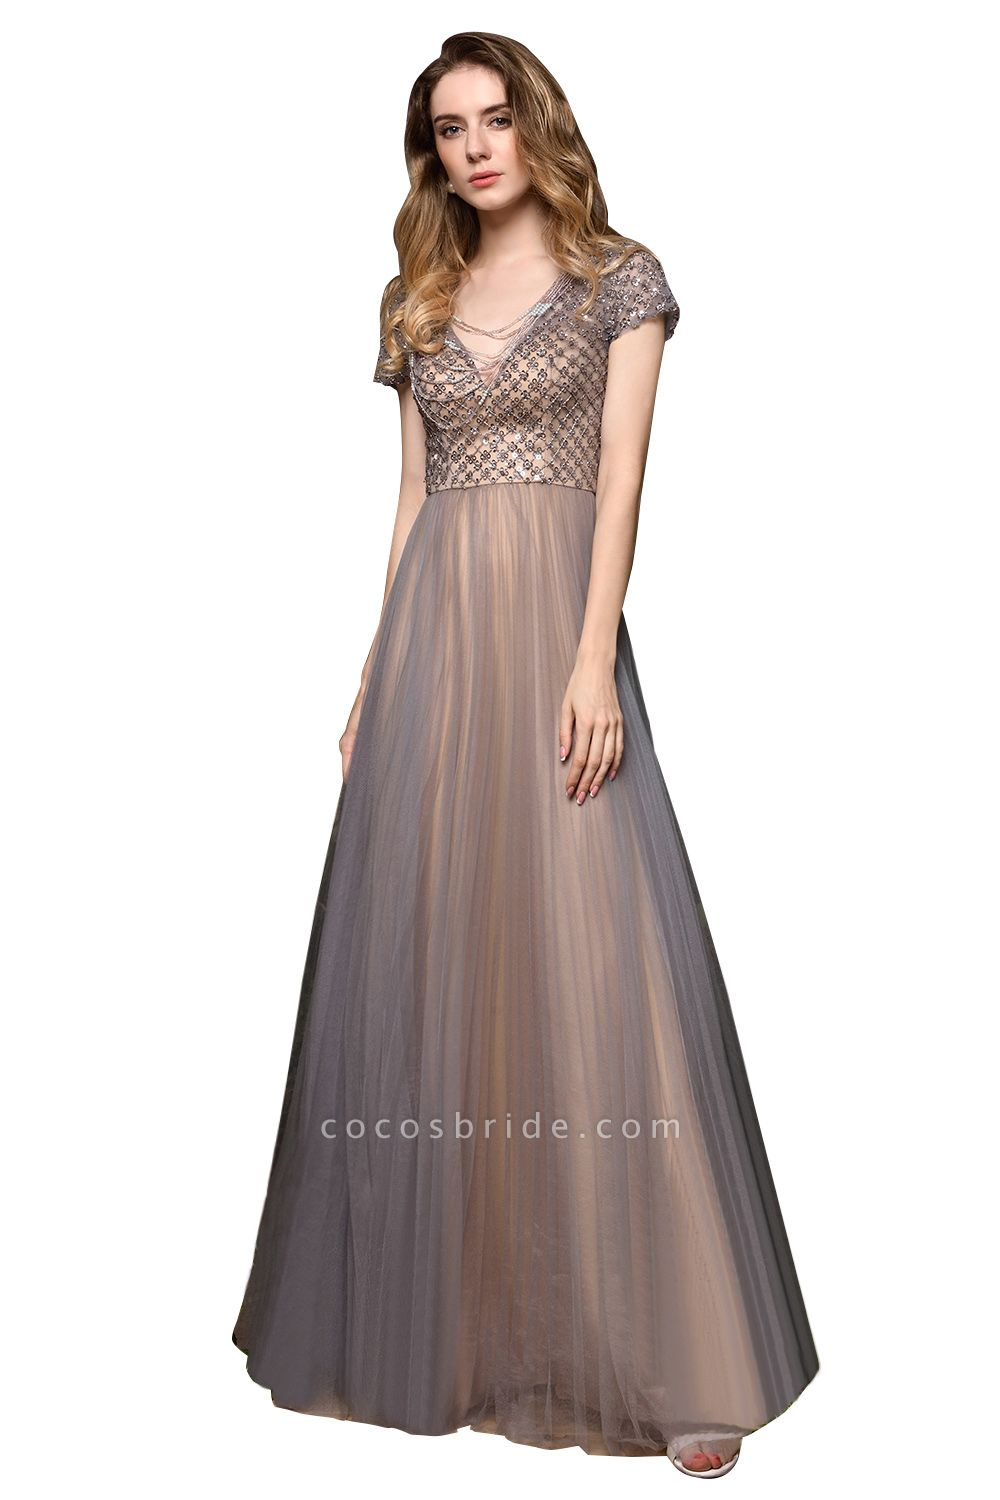 Stunning Short Sleeves Squared Sequined Tulle Prom Dress